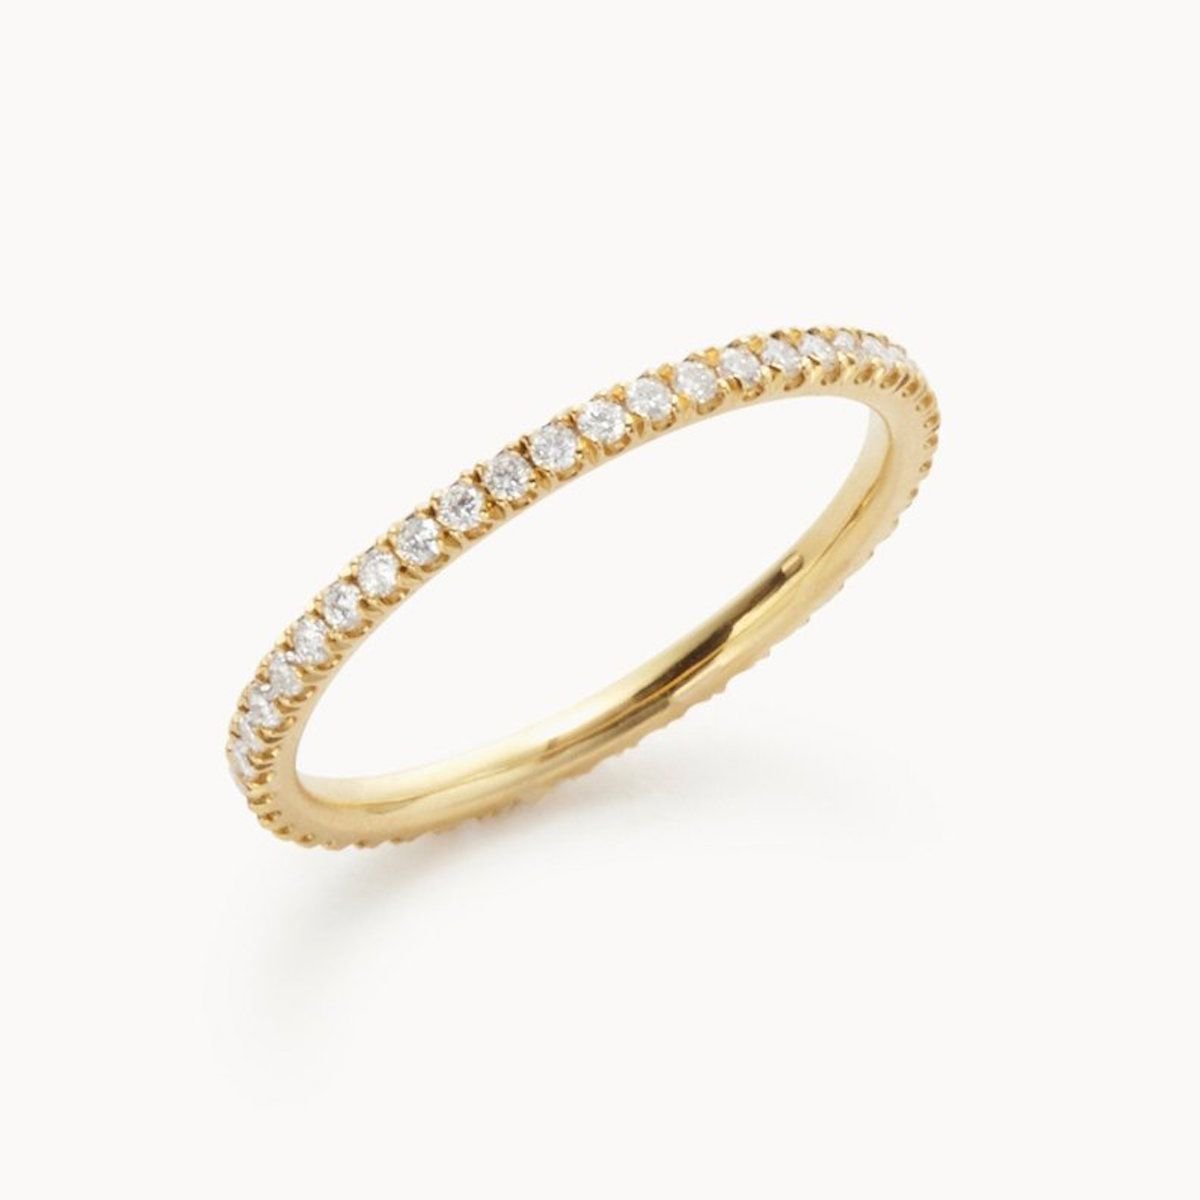 Vrai The Infinity Band in 18k Yellow Gold